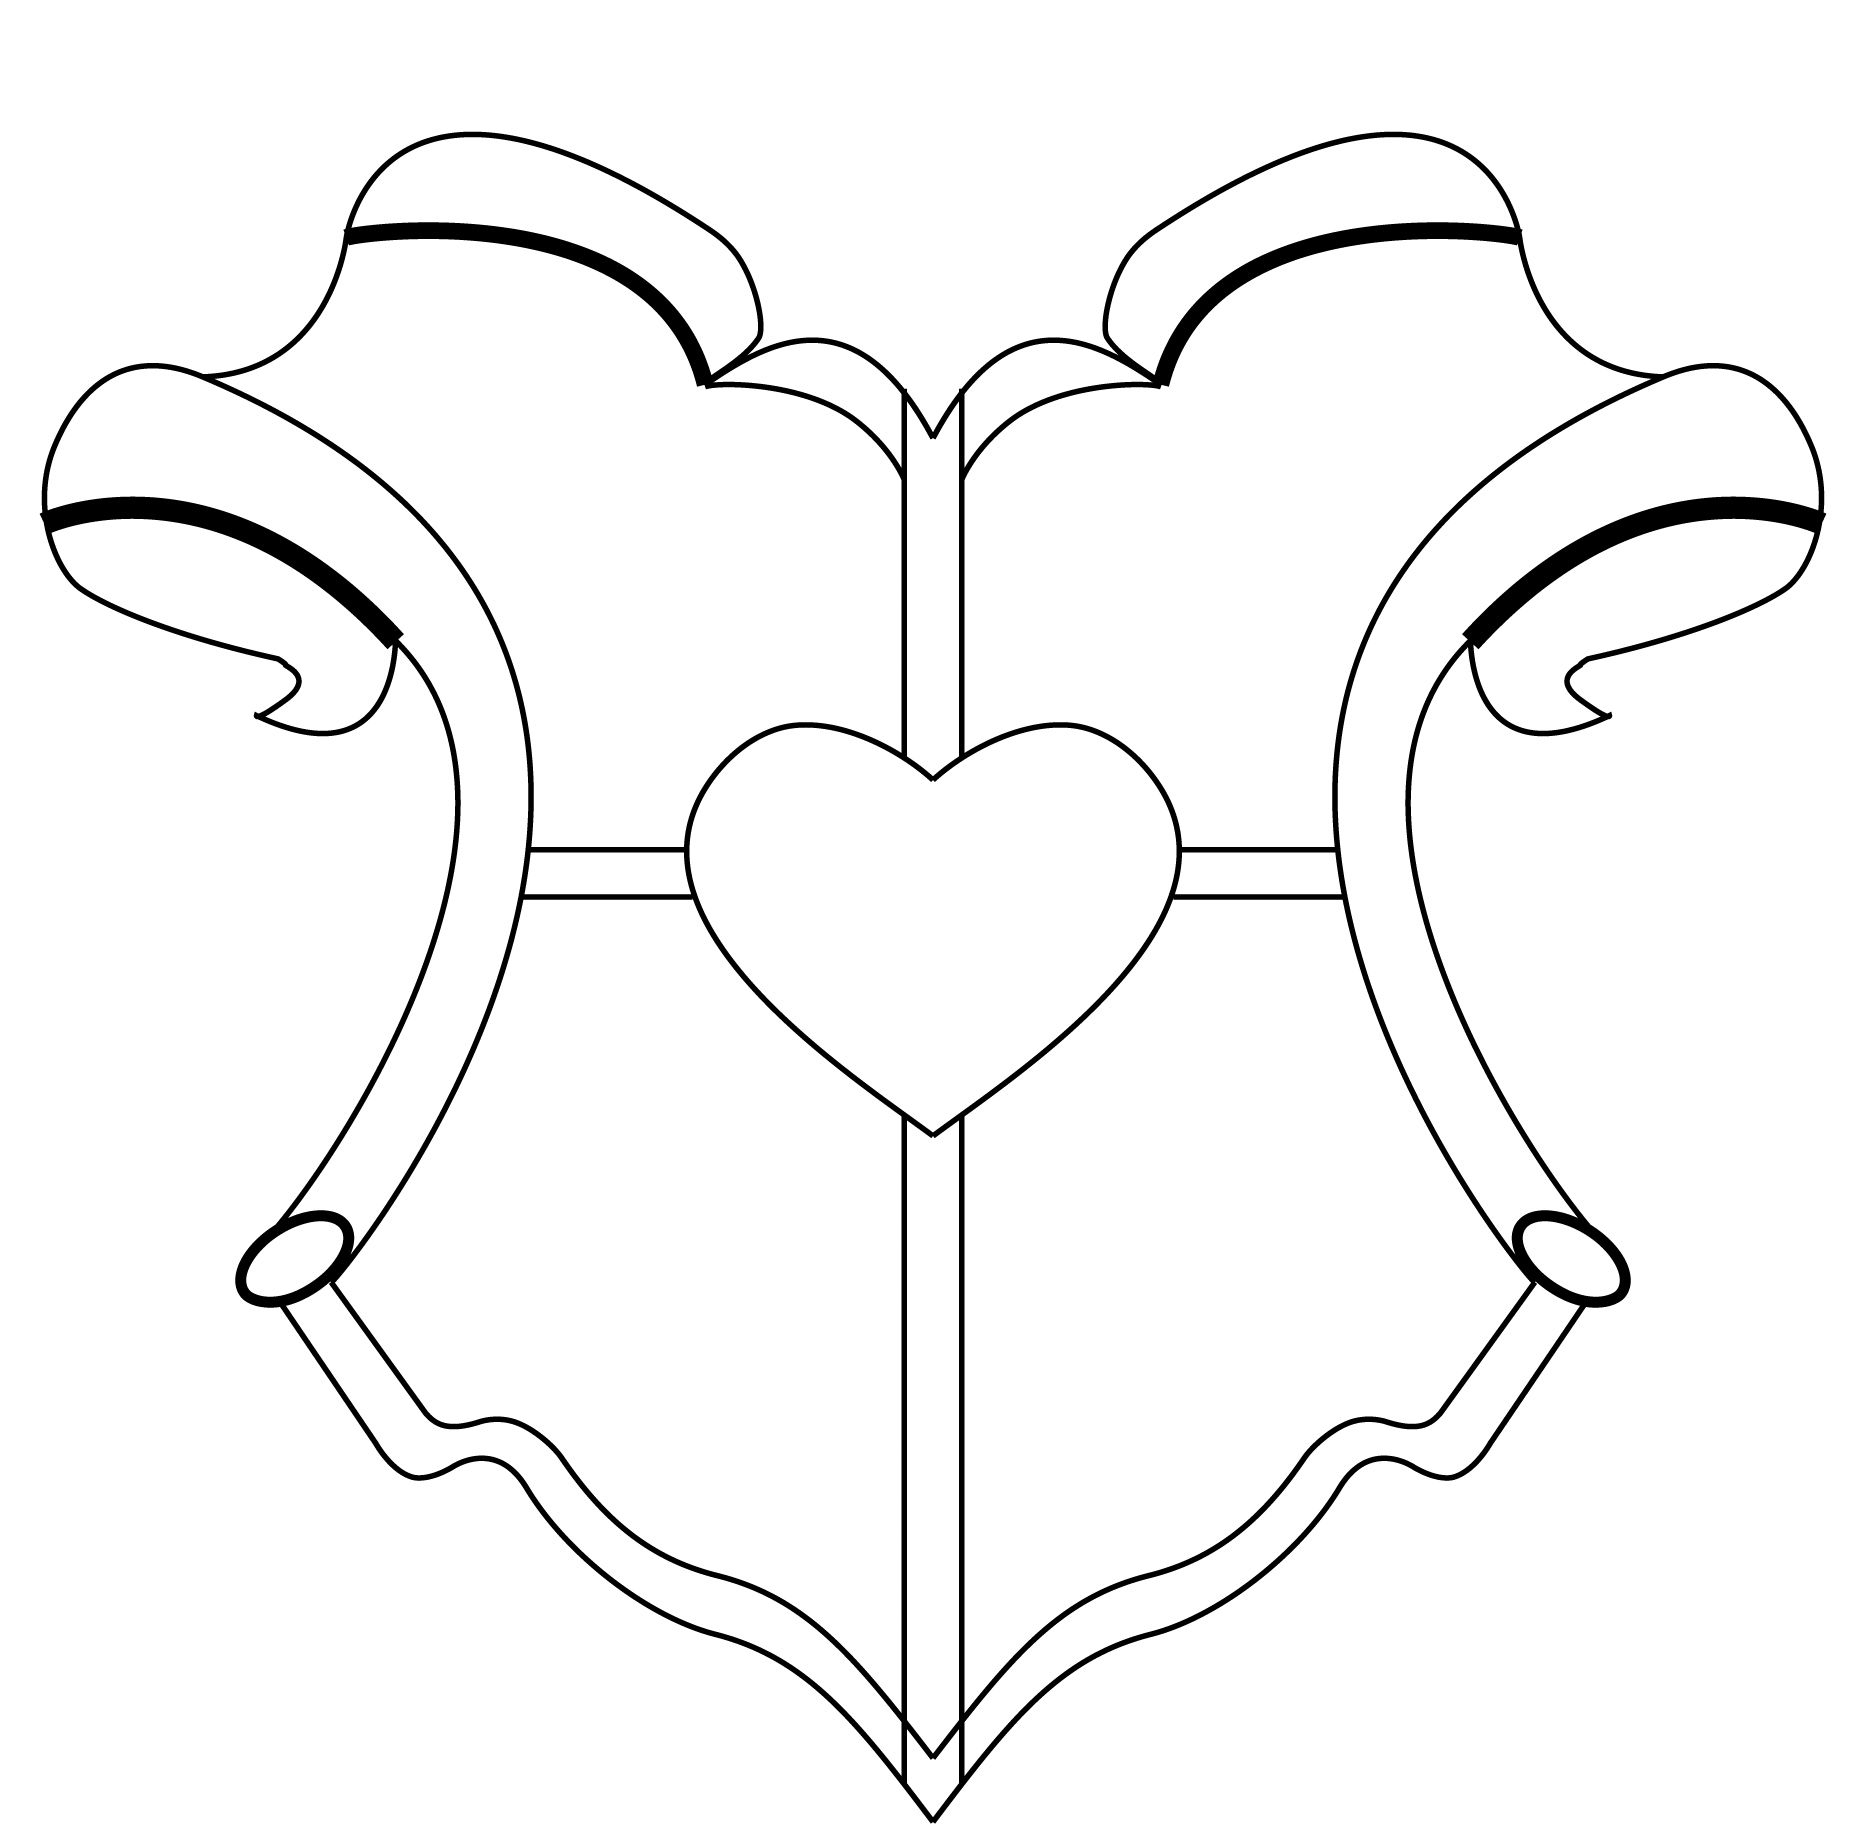 Blank Family Crest Template